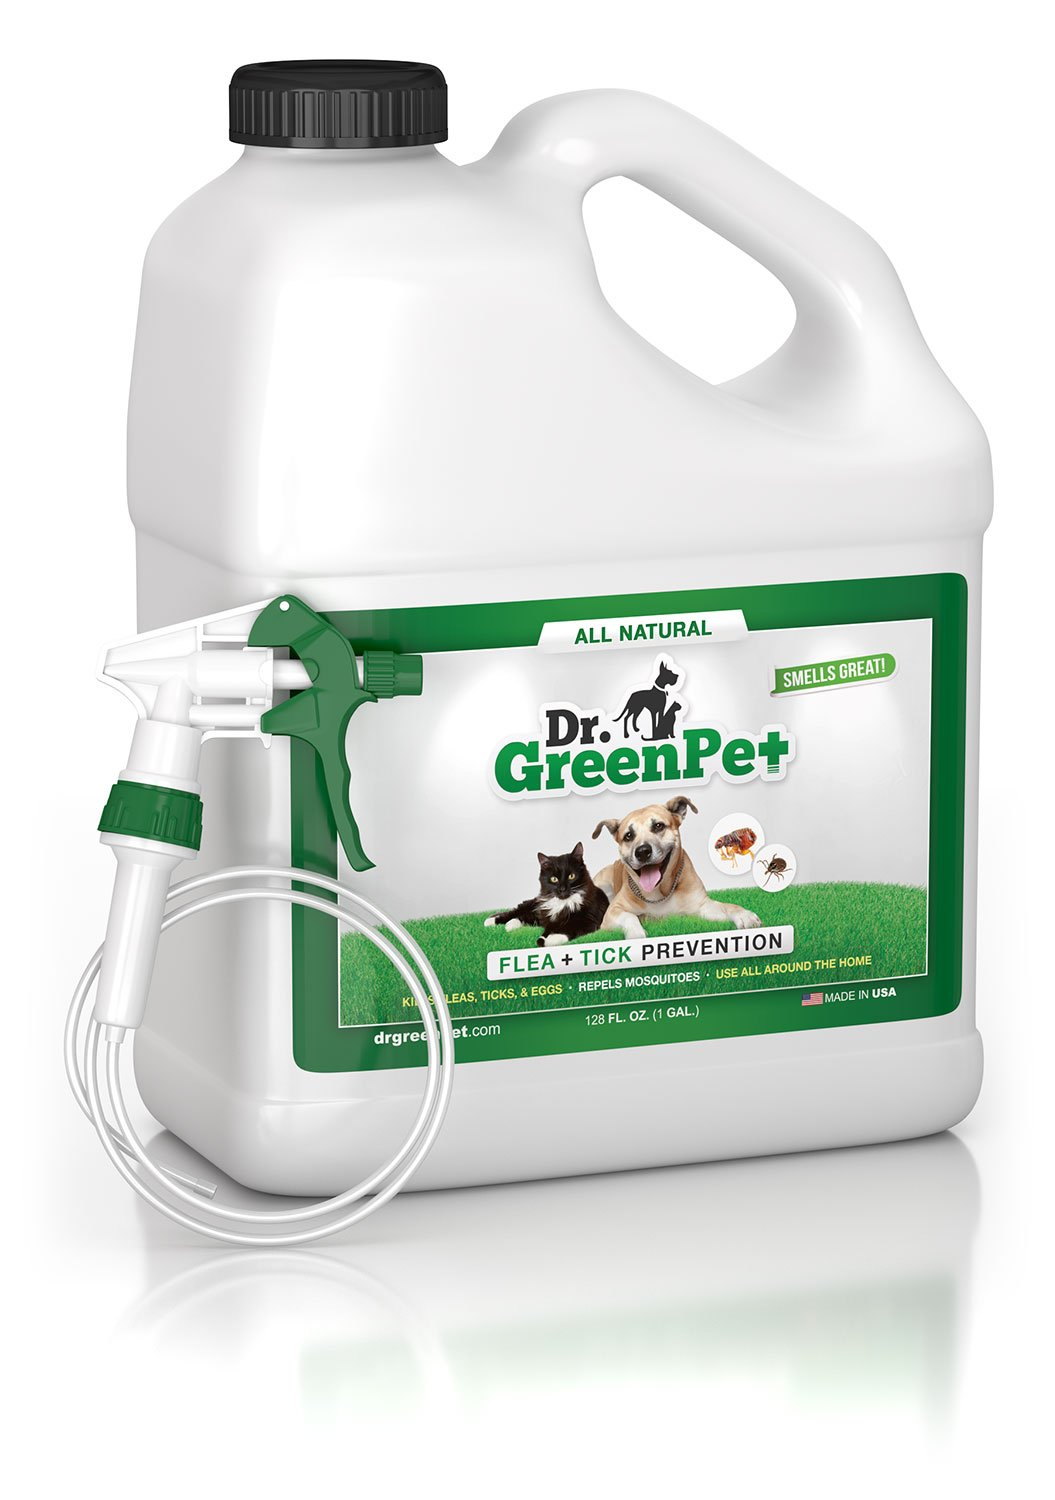 Dr. GreenPet All Natural Flea and Tick Prevention and Control Spray for Dogs and Cats - 1 Gallon - Smells Great!